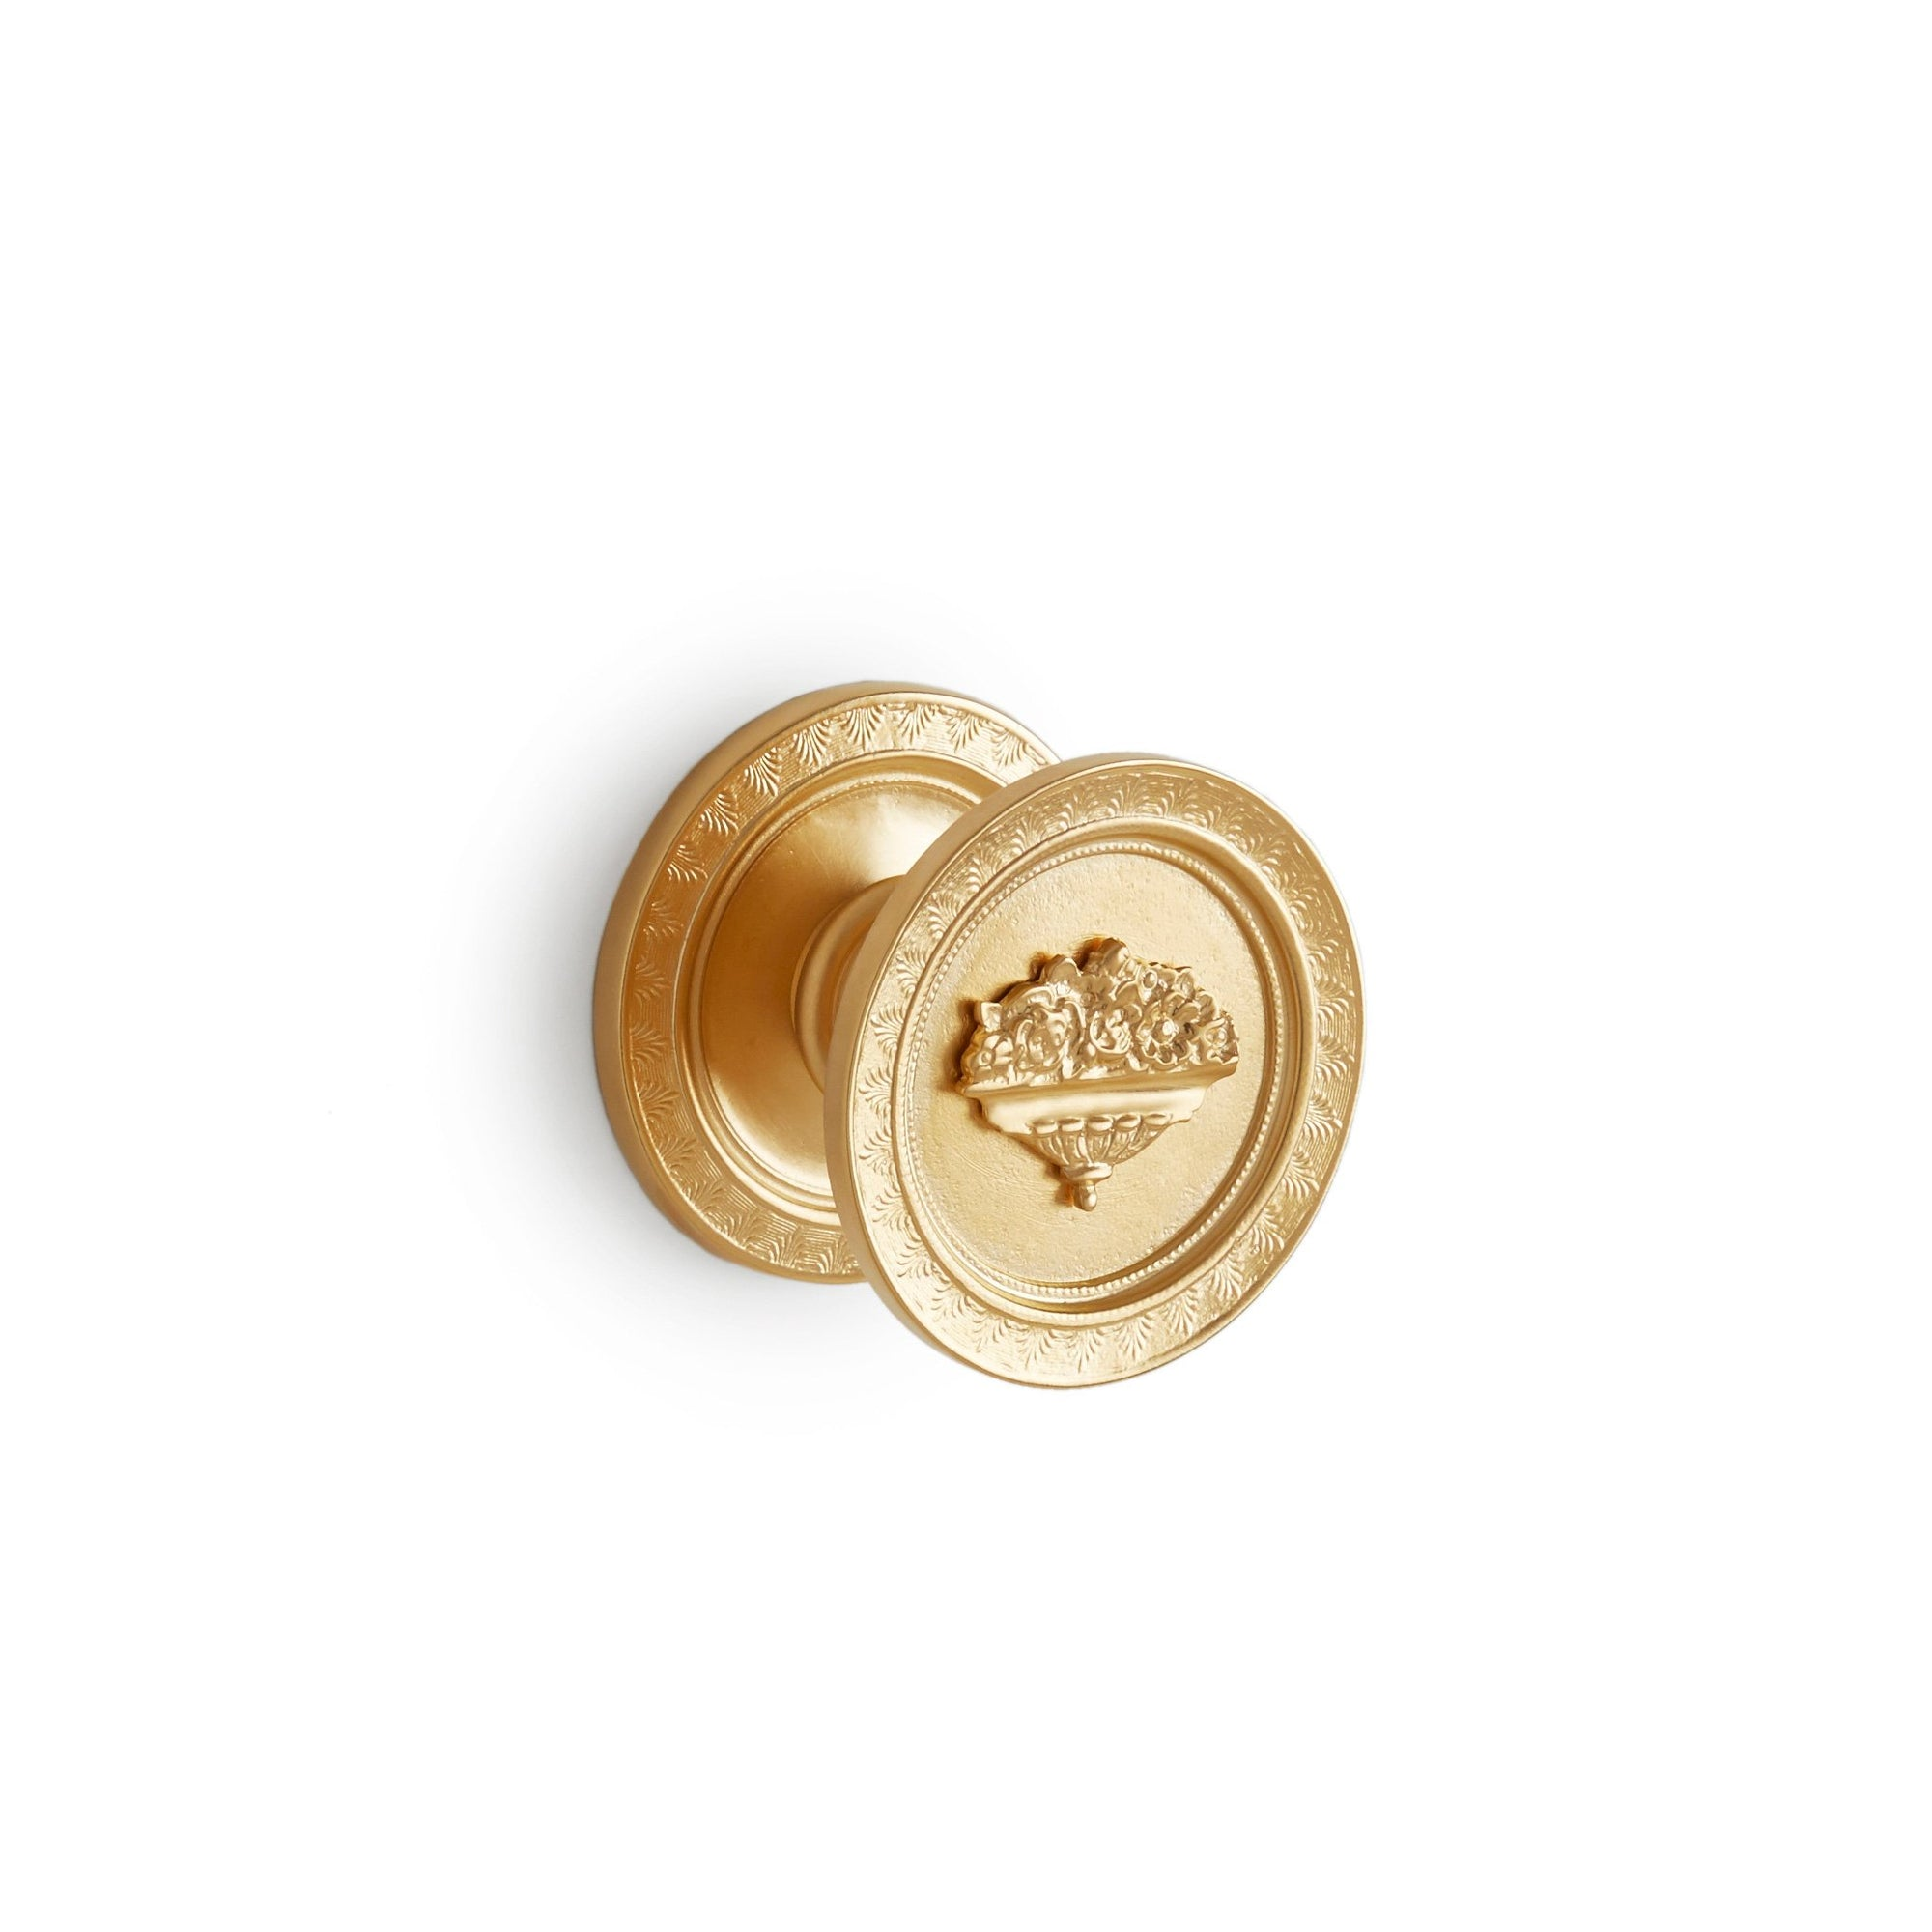 1090DOR-GP Sherle Wagner International Imperial Door Knob in Gold Plate metal finish